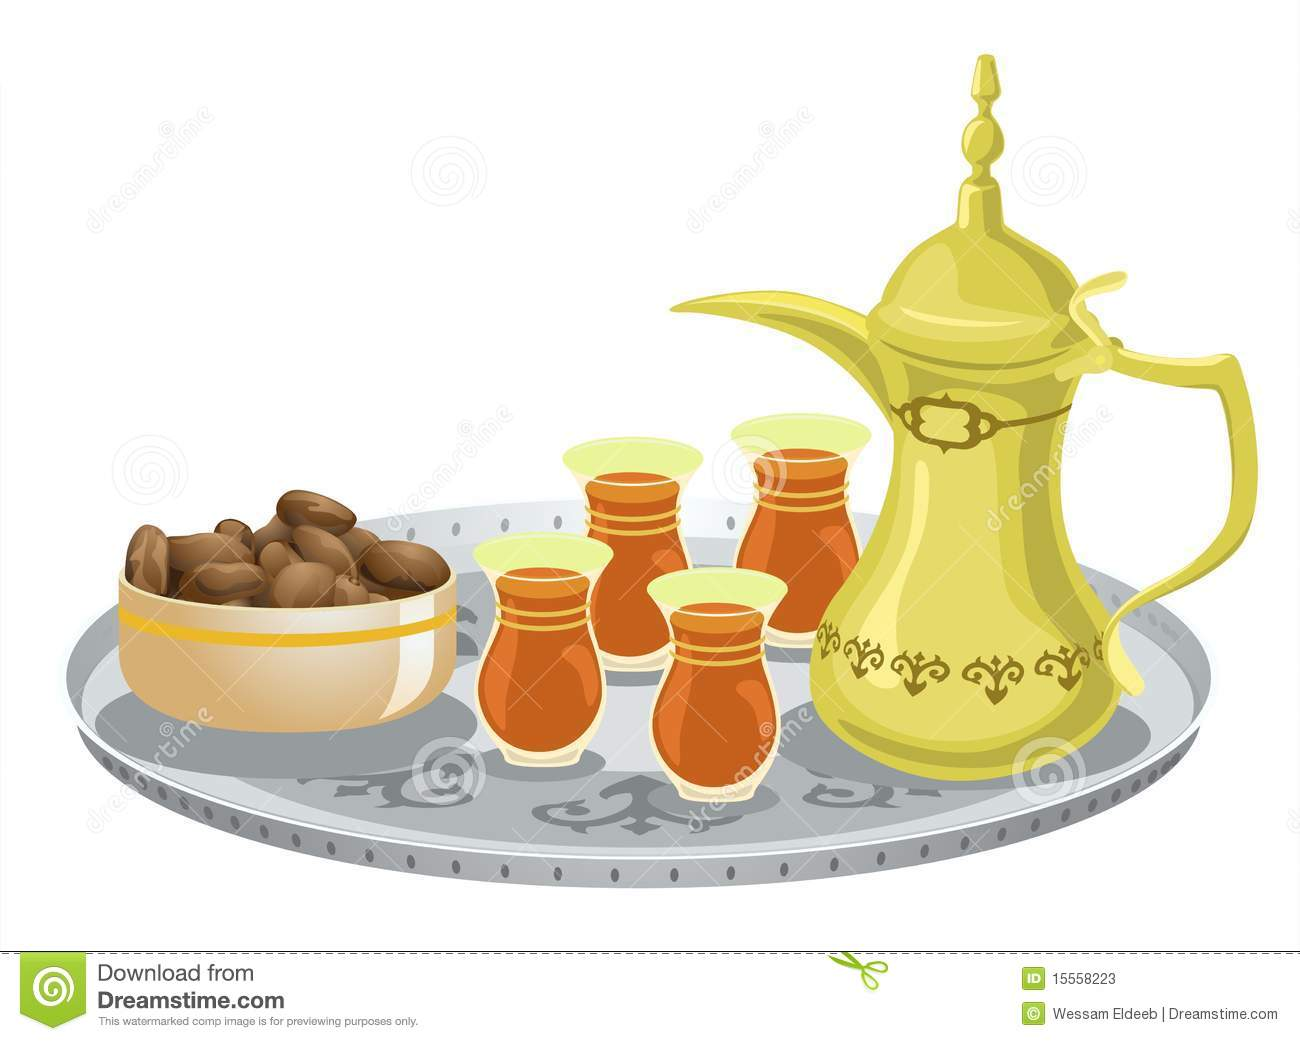 Tea Glasses And Arabian Decorated Tray 1 Royalty Free Stock Photo.